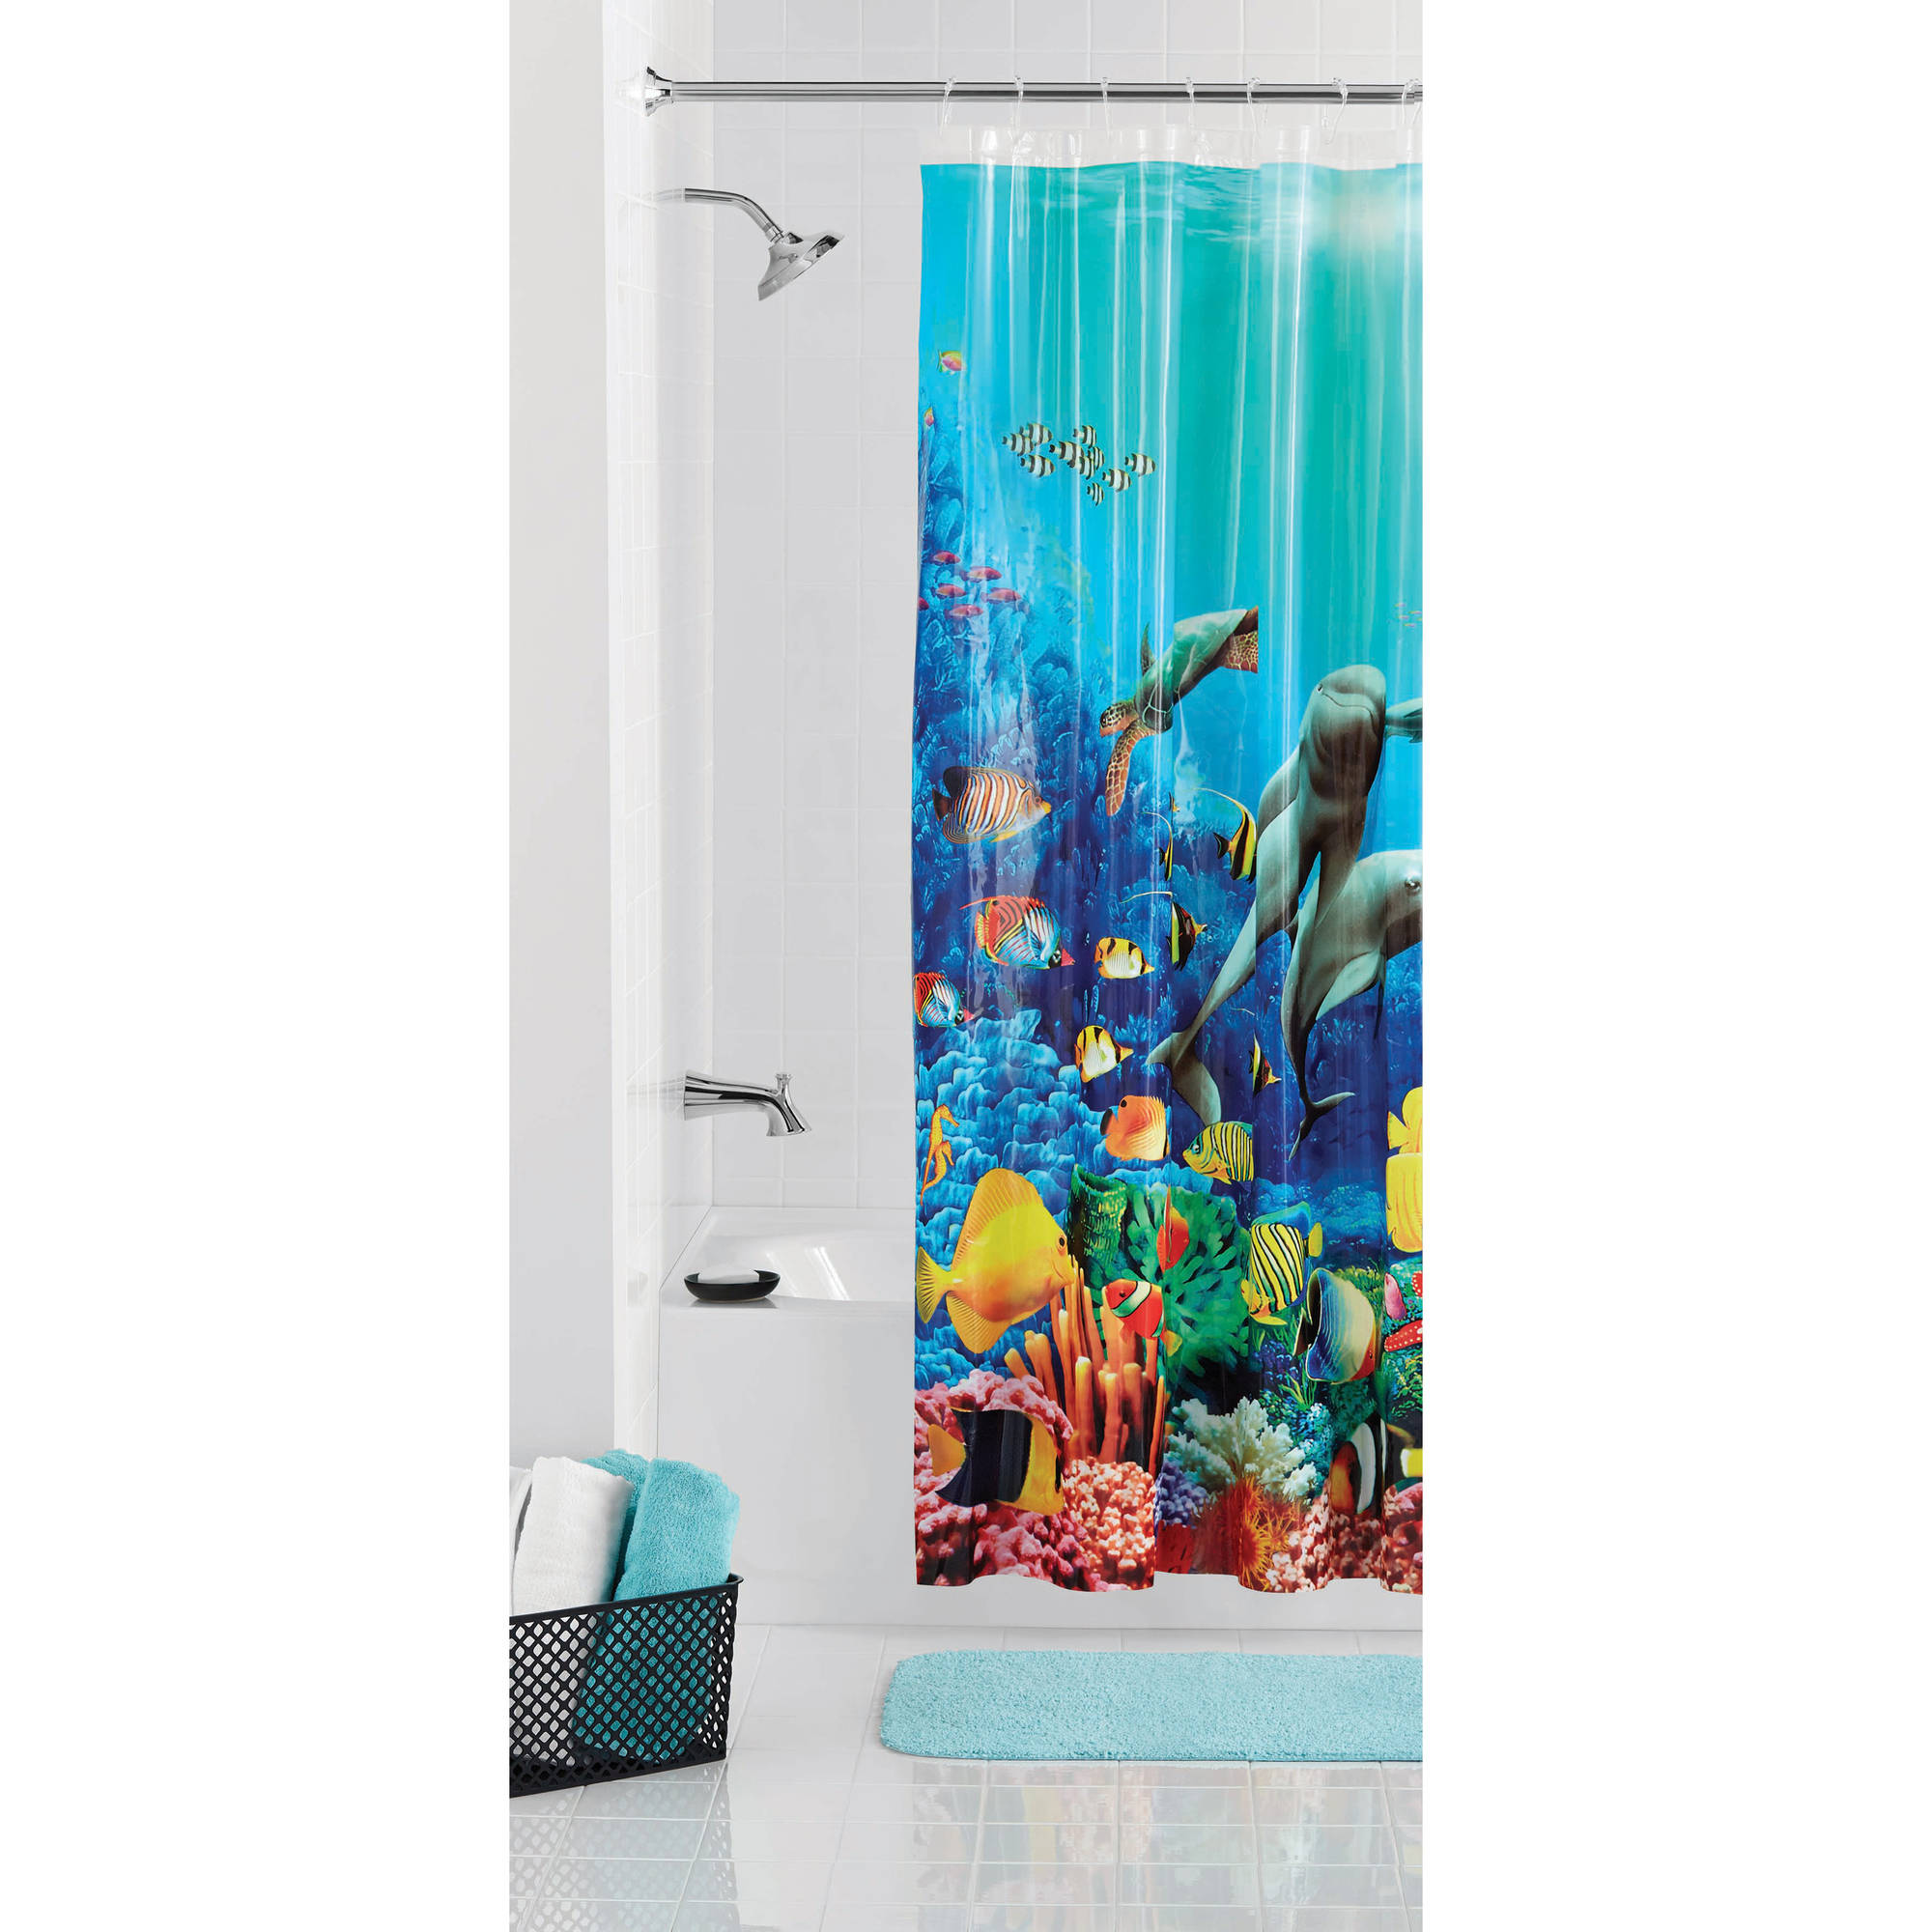 Under the sea peva shower curtain blue walmart com - Under The Sea Peva Shower Curtain Blue Walmart Com 26